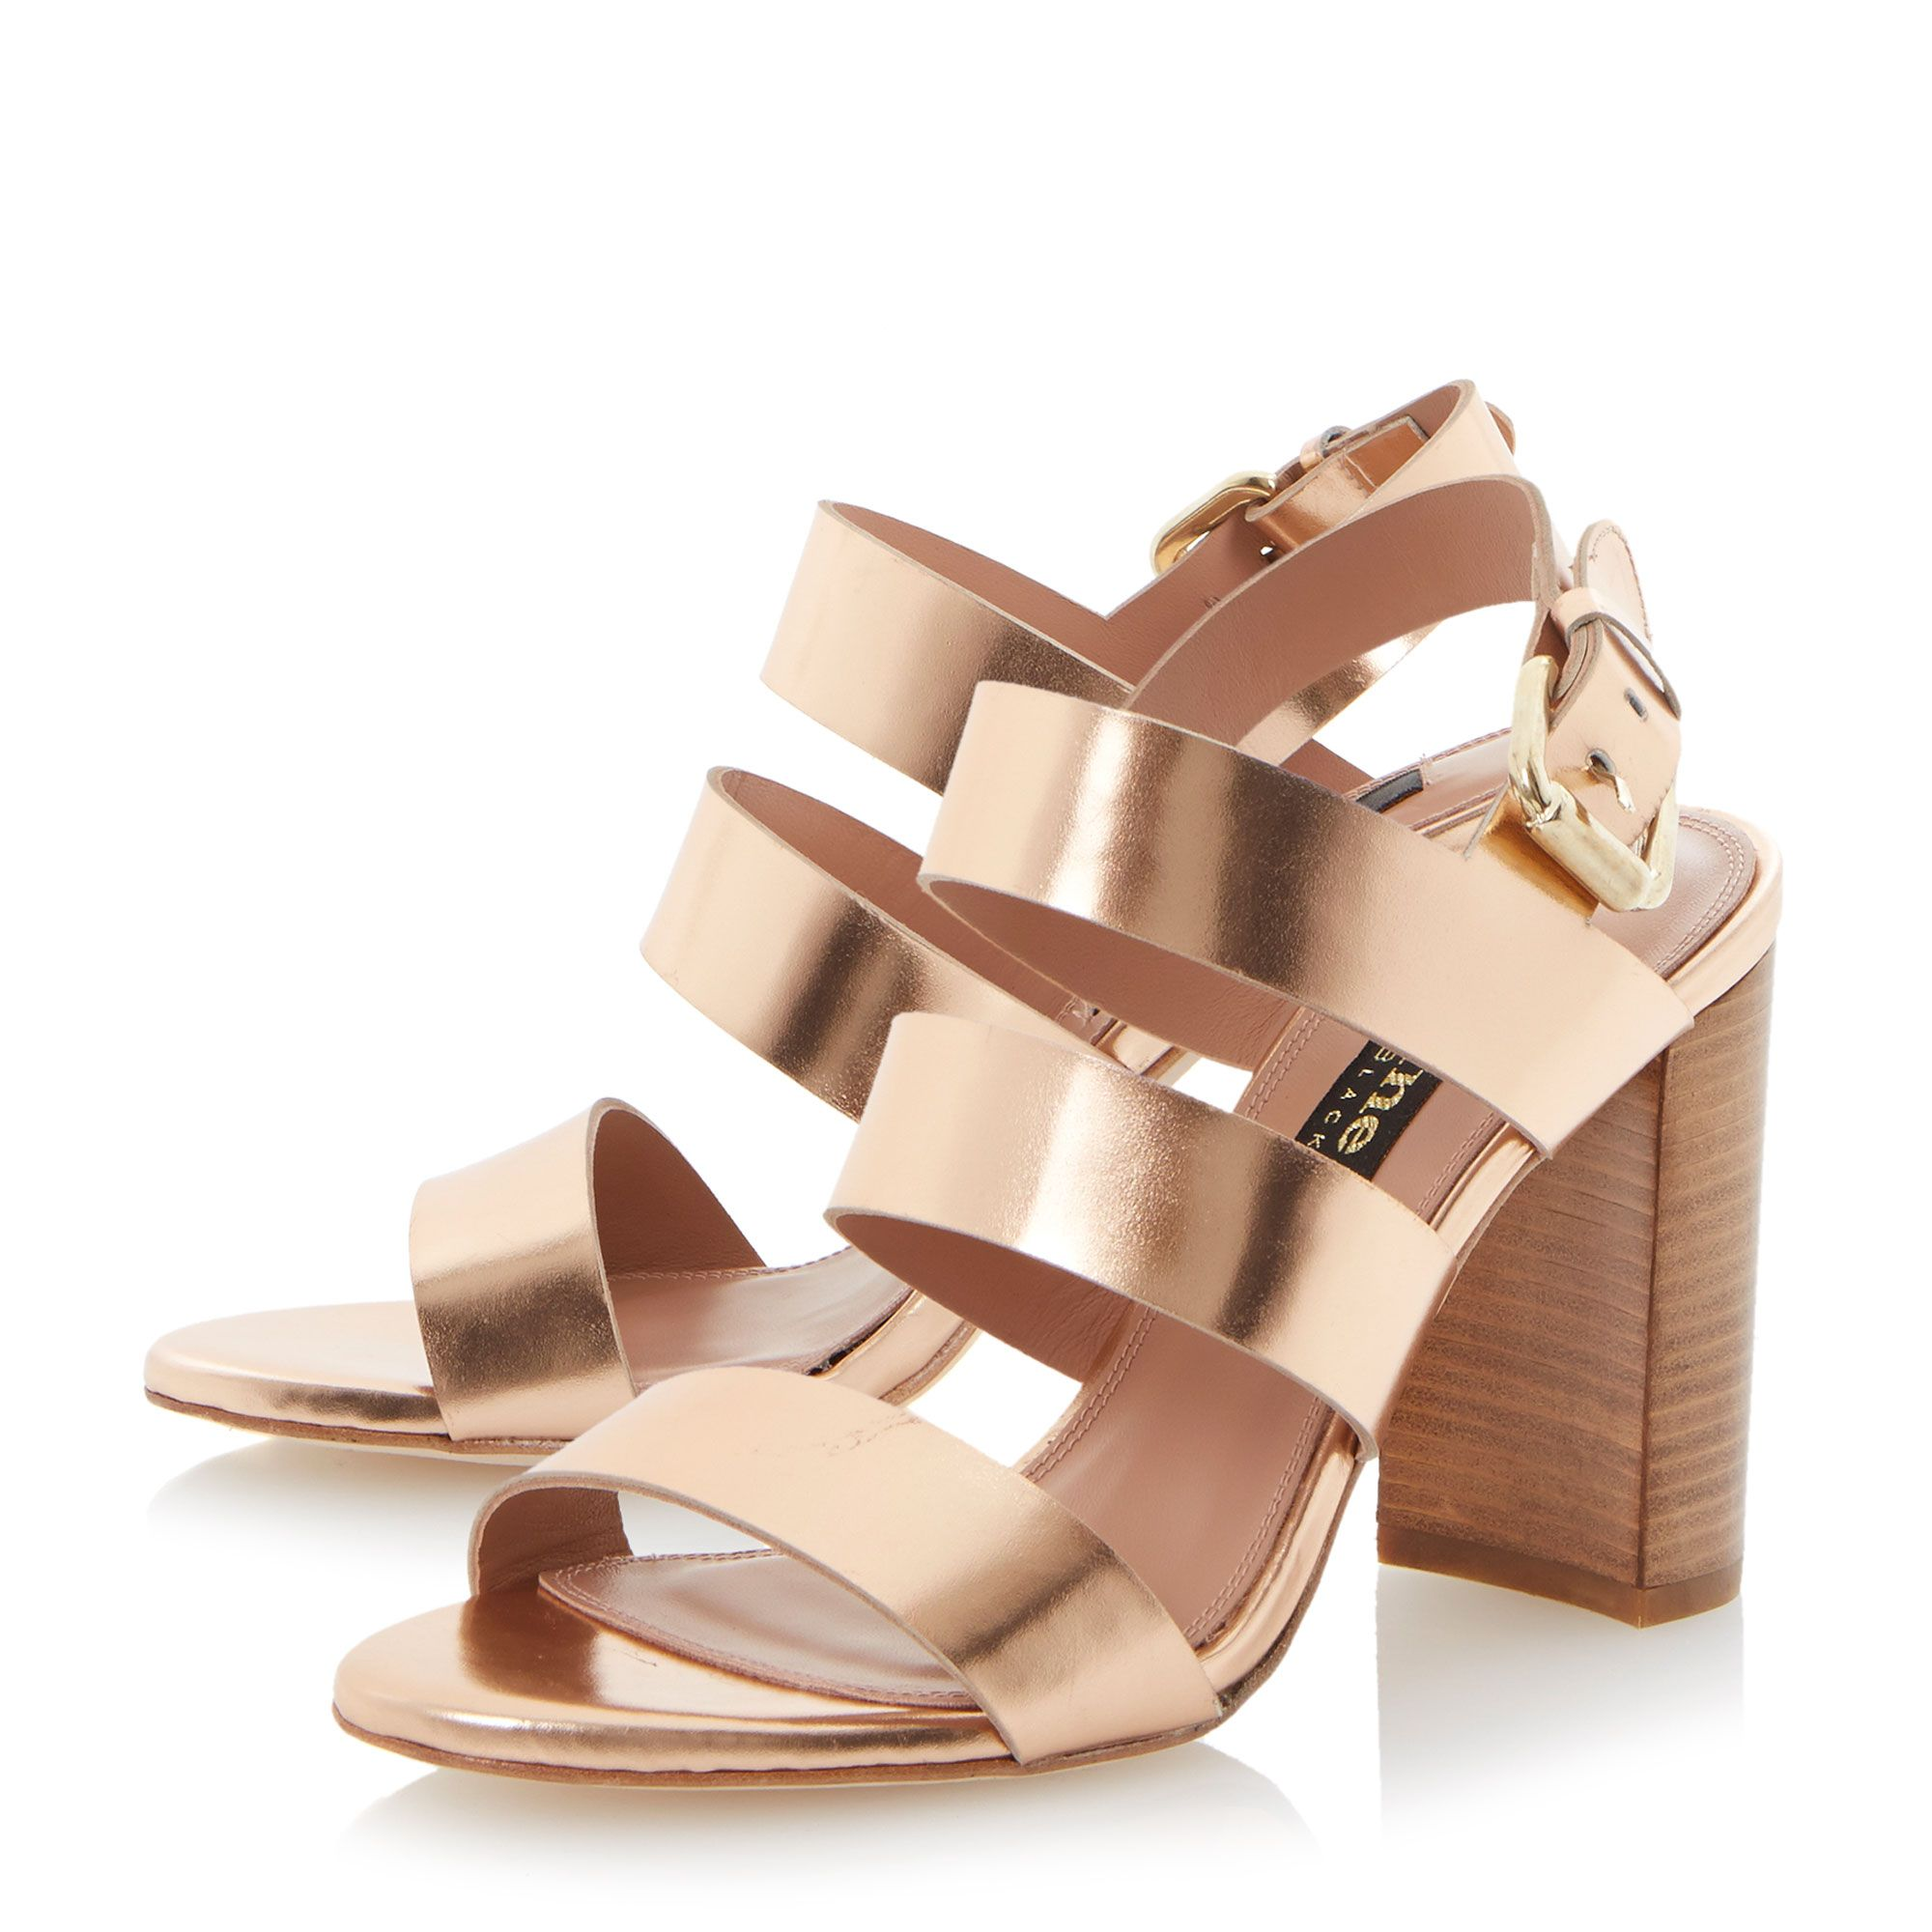 Larna leather stacked heel buckle sandals